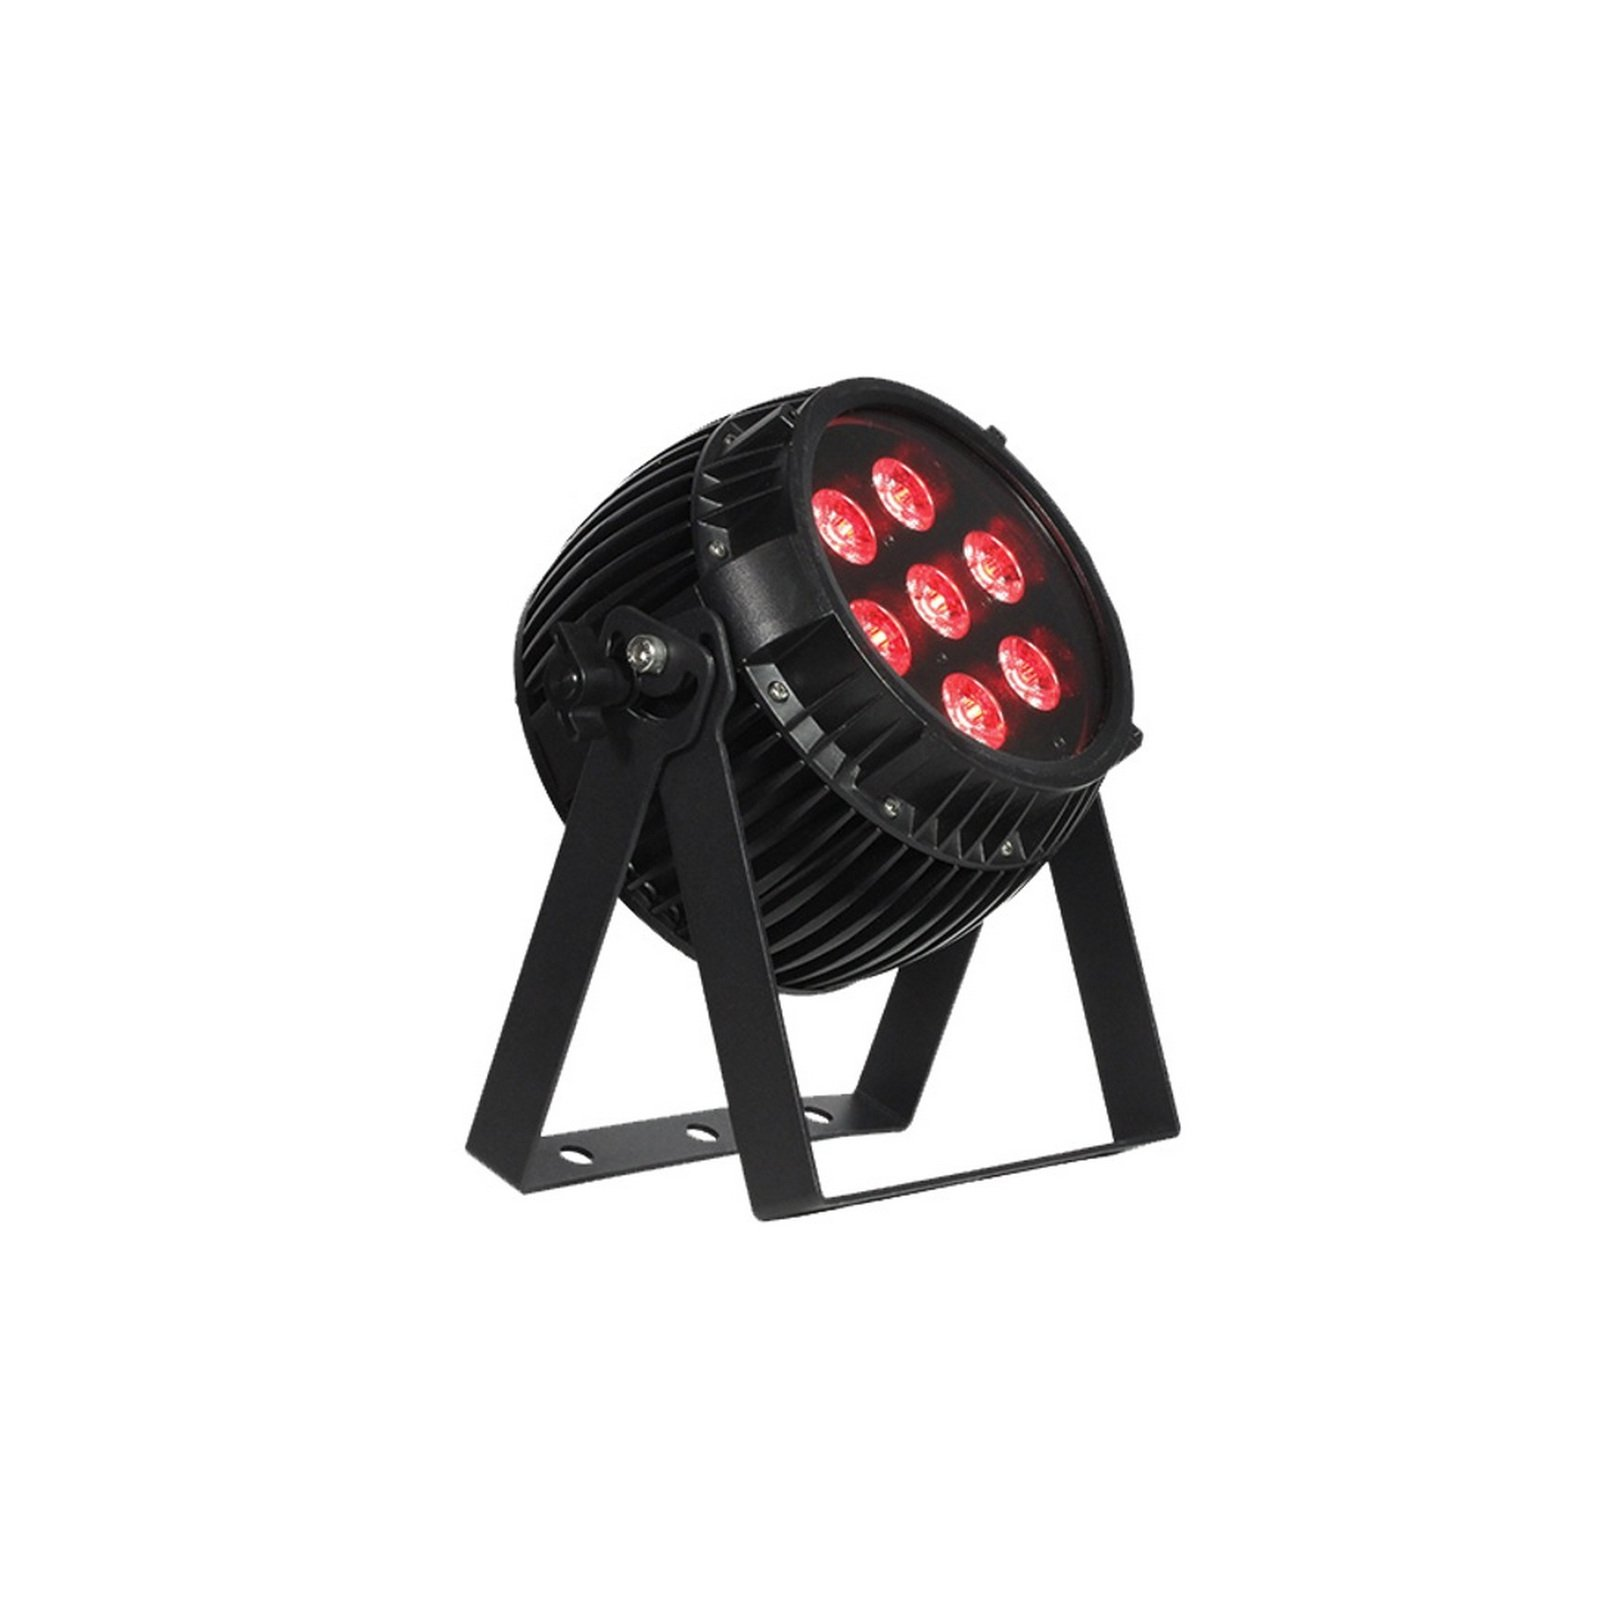 Blizzard Lighting TOURnado Sky W-DMX | 7x 15W RGBAW UV 6 in 1 LED Par Fixture